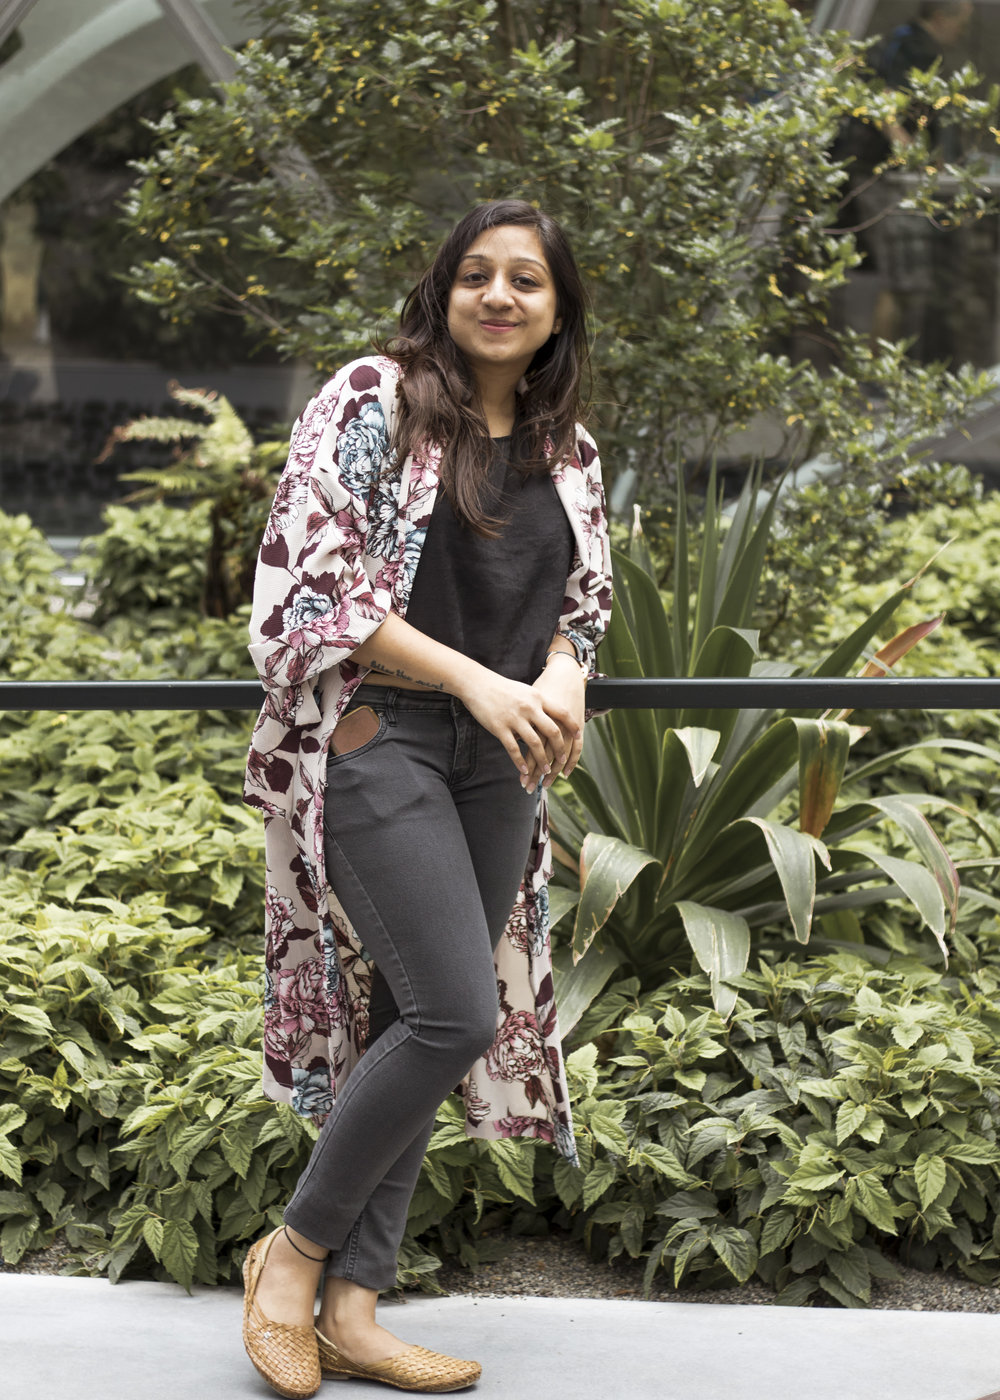 Pictured here is Abha Agrawal, founder of DesiHangover, styled in our  Floral Kimono  at the Amazon Spheres in downtown Seattle.